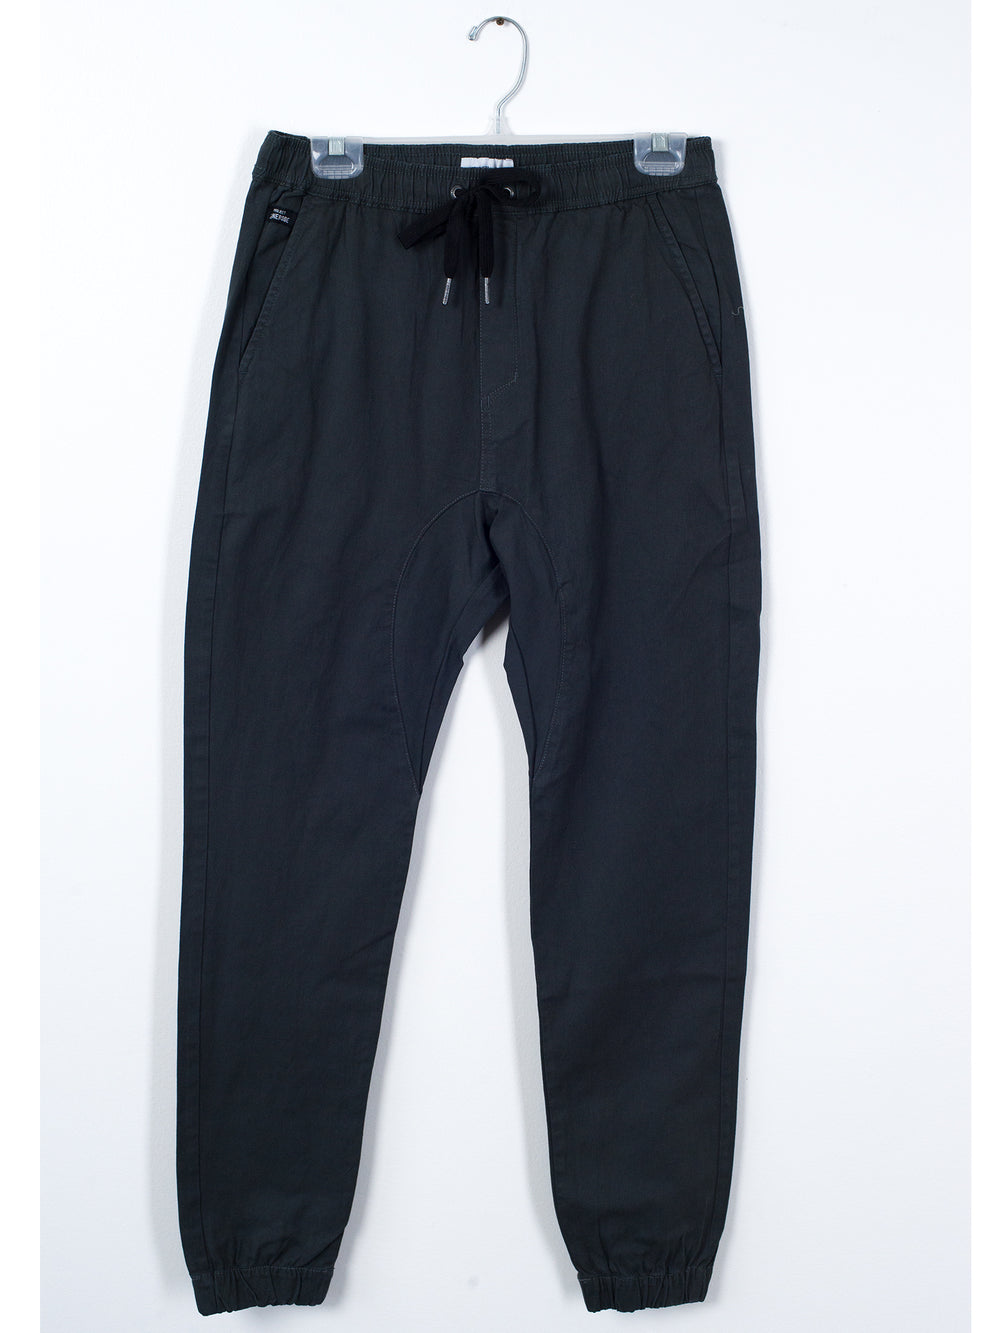 MENS SHOGUN JOGGER PANT - BLACK